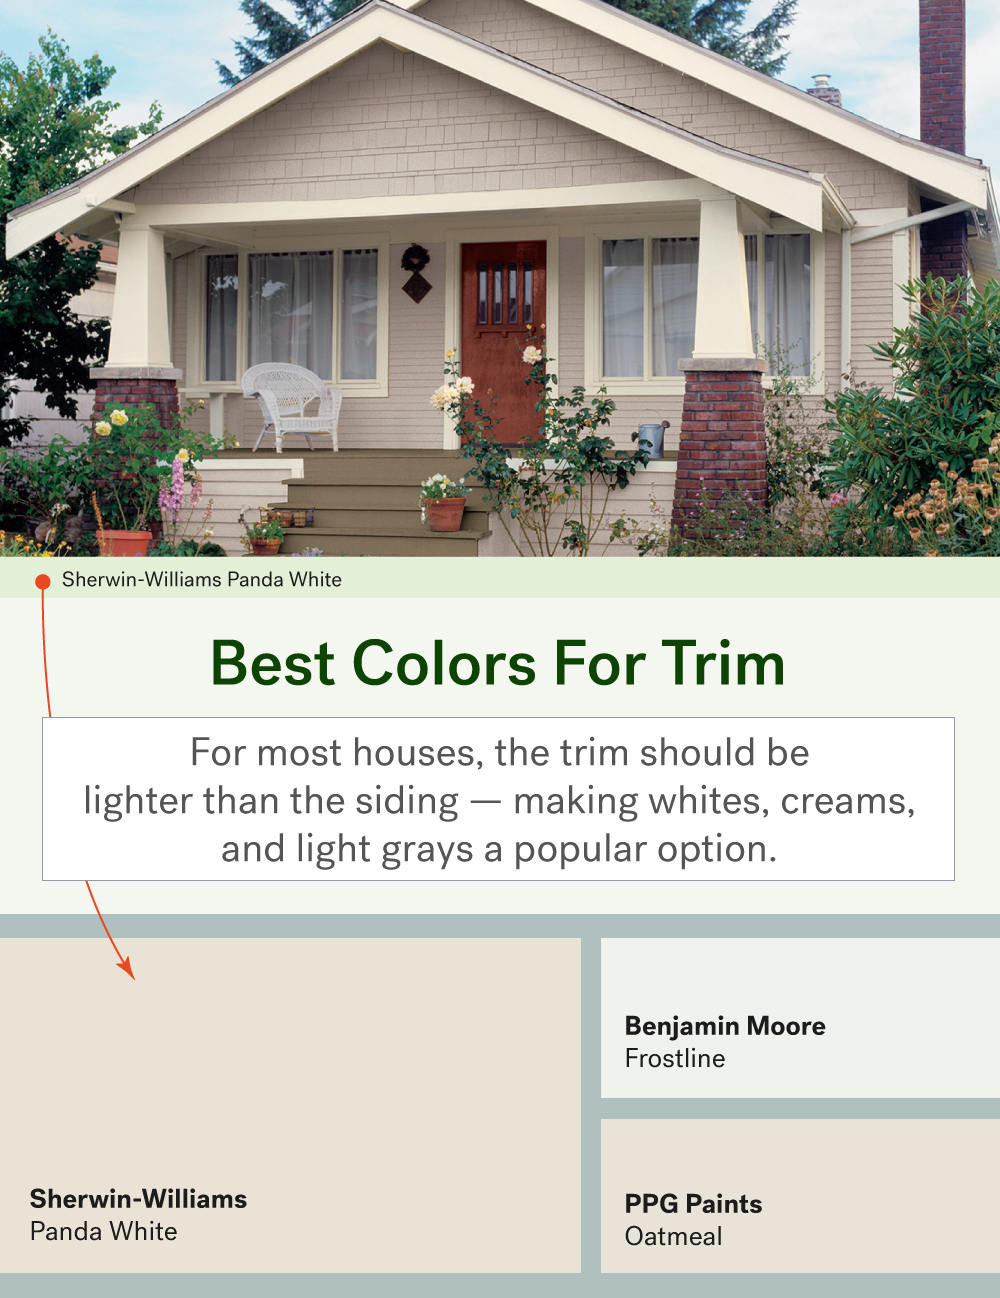 The most popular exterior paint colors huffpost life - Best exterior color for small house ...